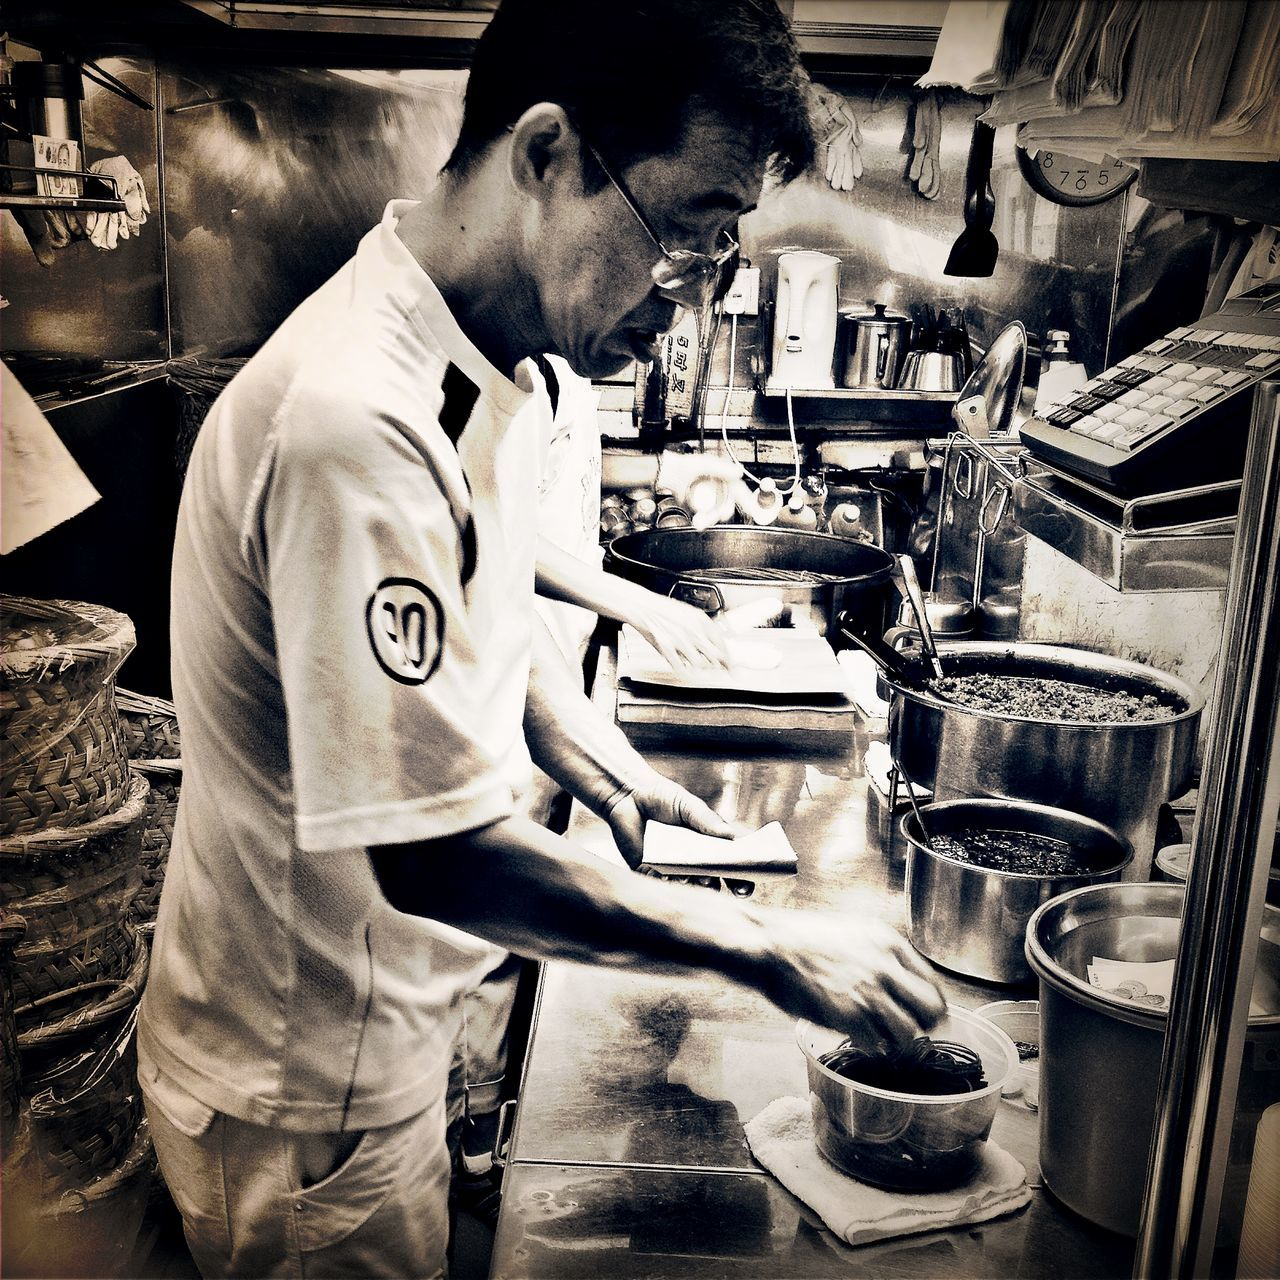 real people, one person, indoors, casual clothing, mature adult, standing, side view, mature men, commercial kitchen, kitchen, young adult, working, chef, occupation, freshness, day, people